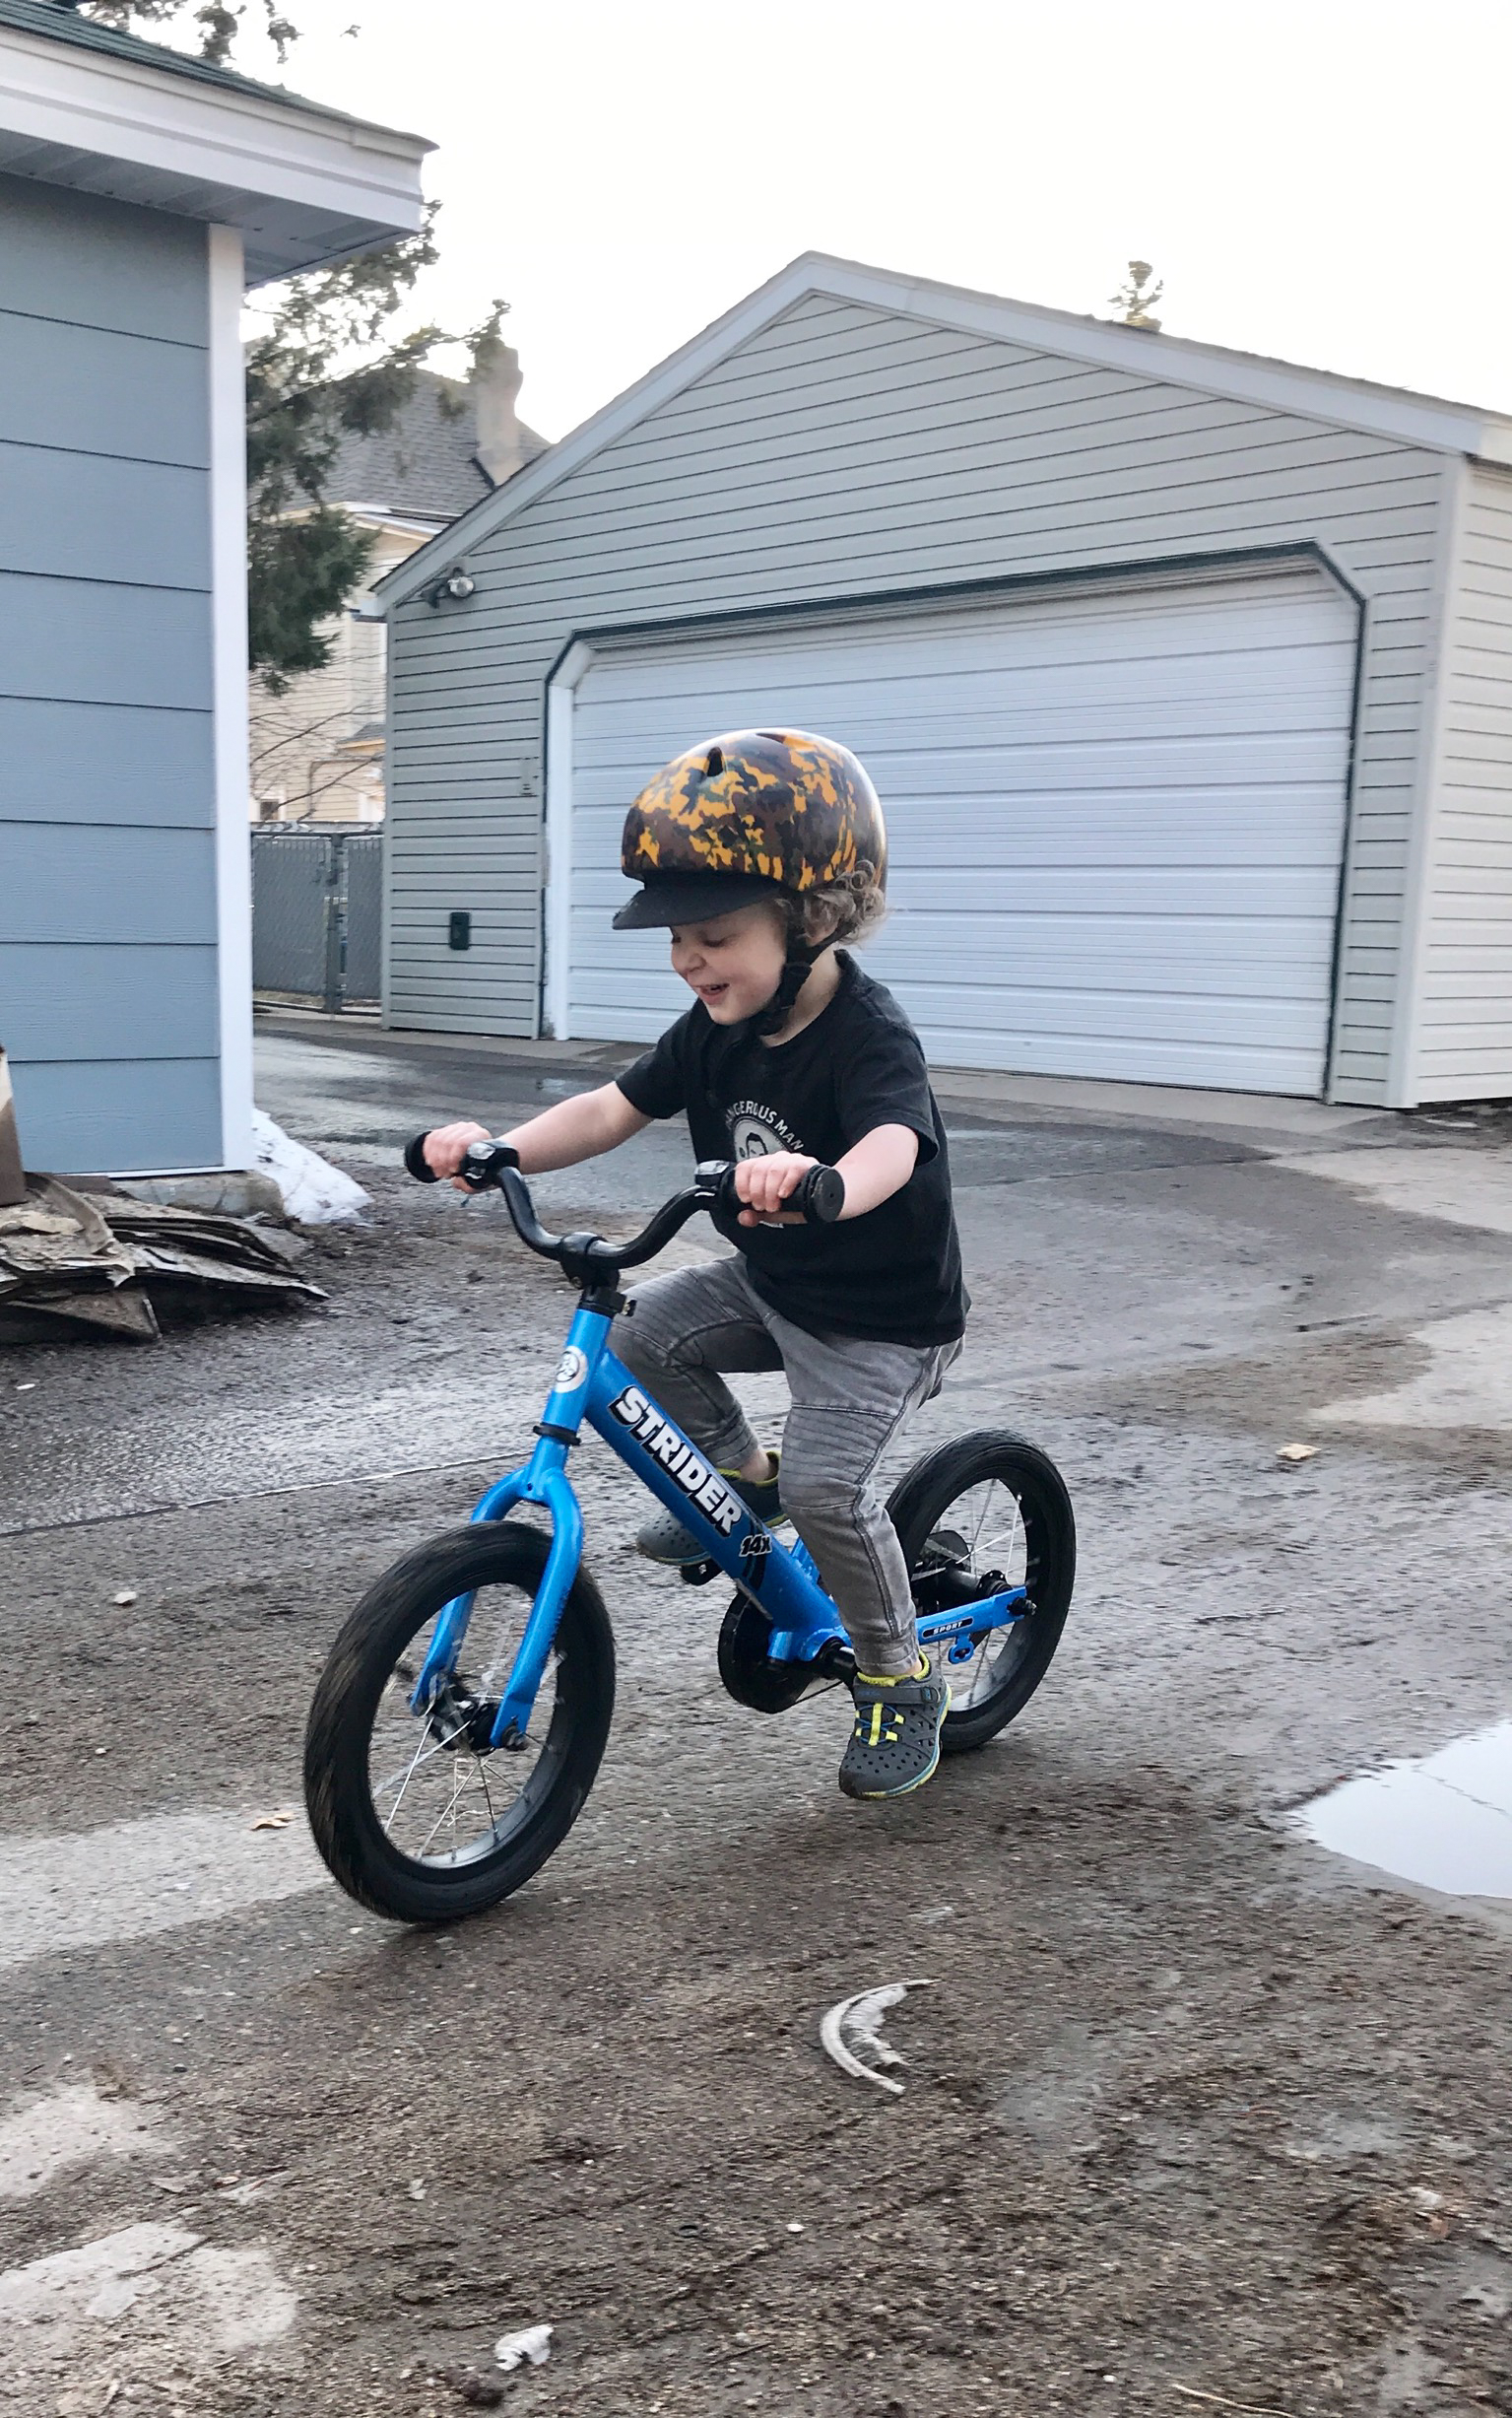 Kid pedaling blue 14x Sport with Strider headlights on handlebar